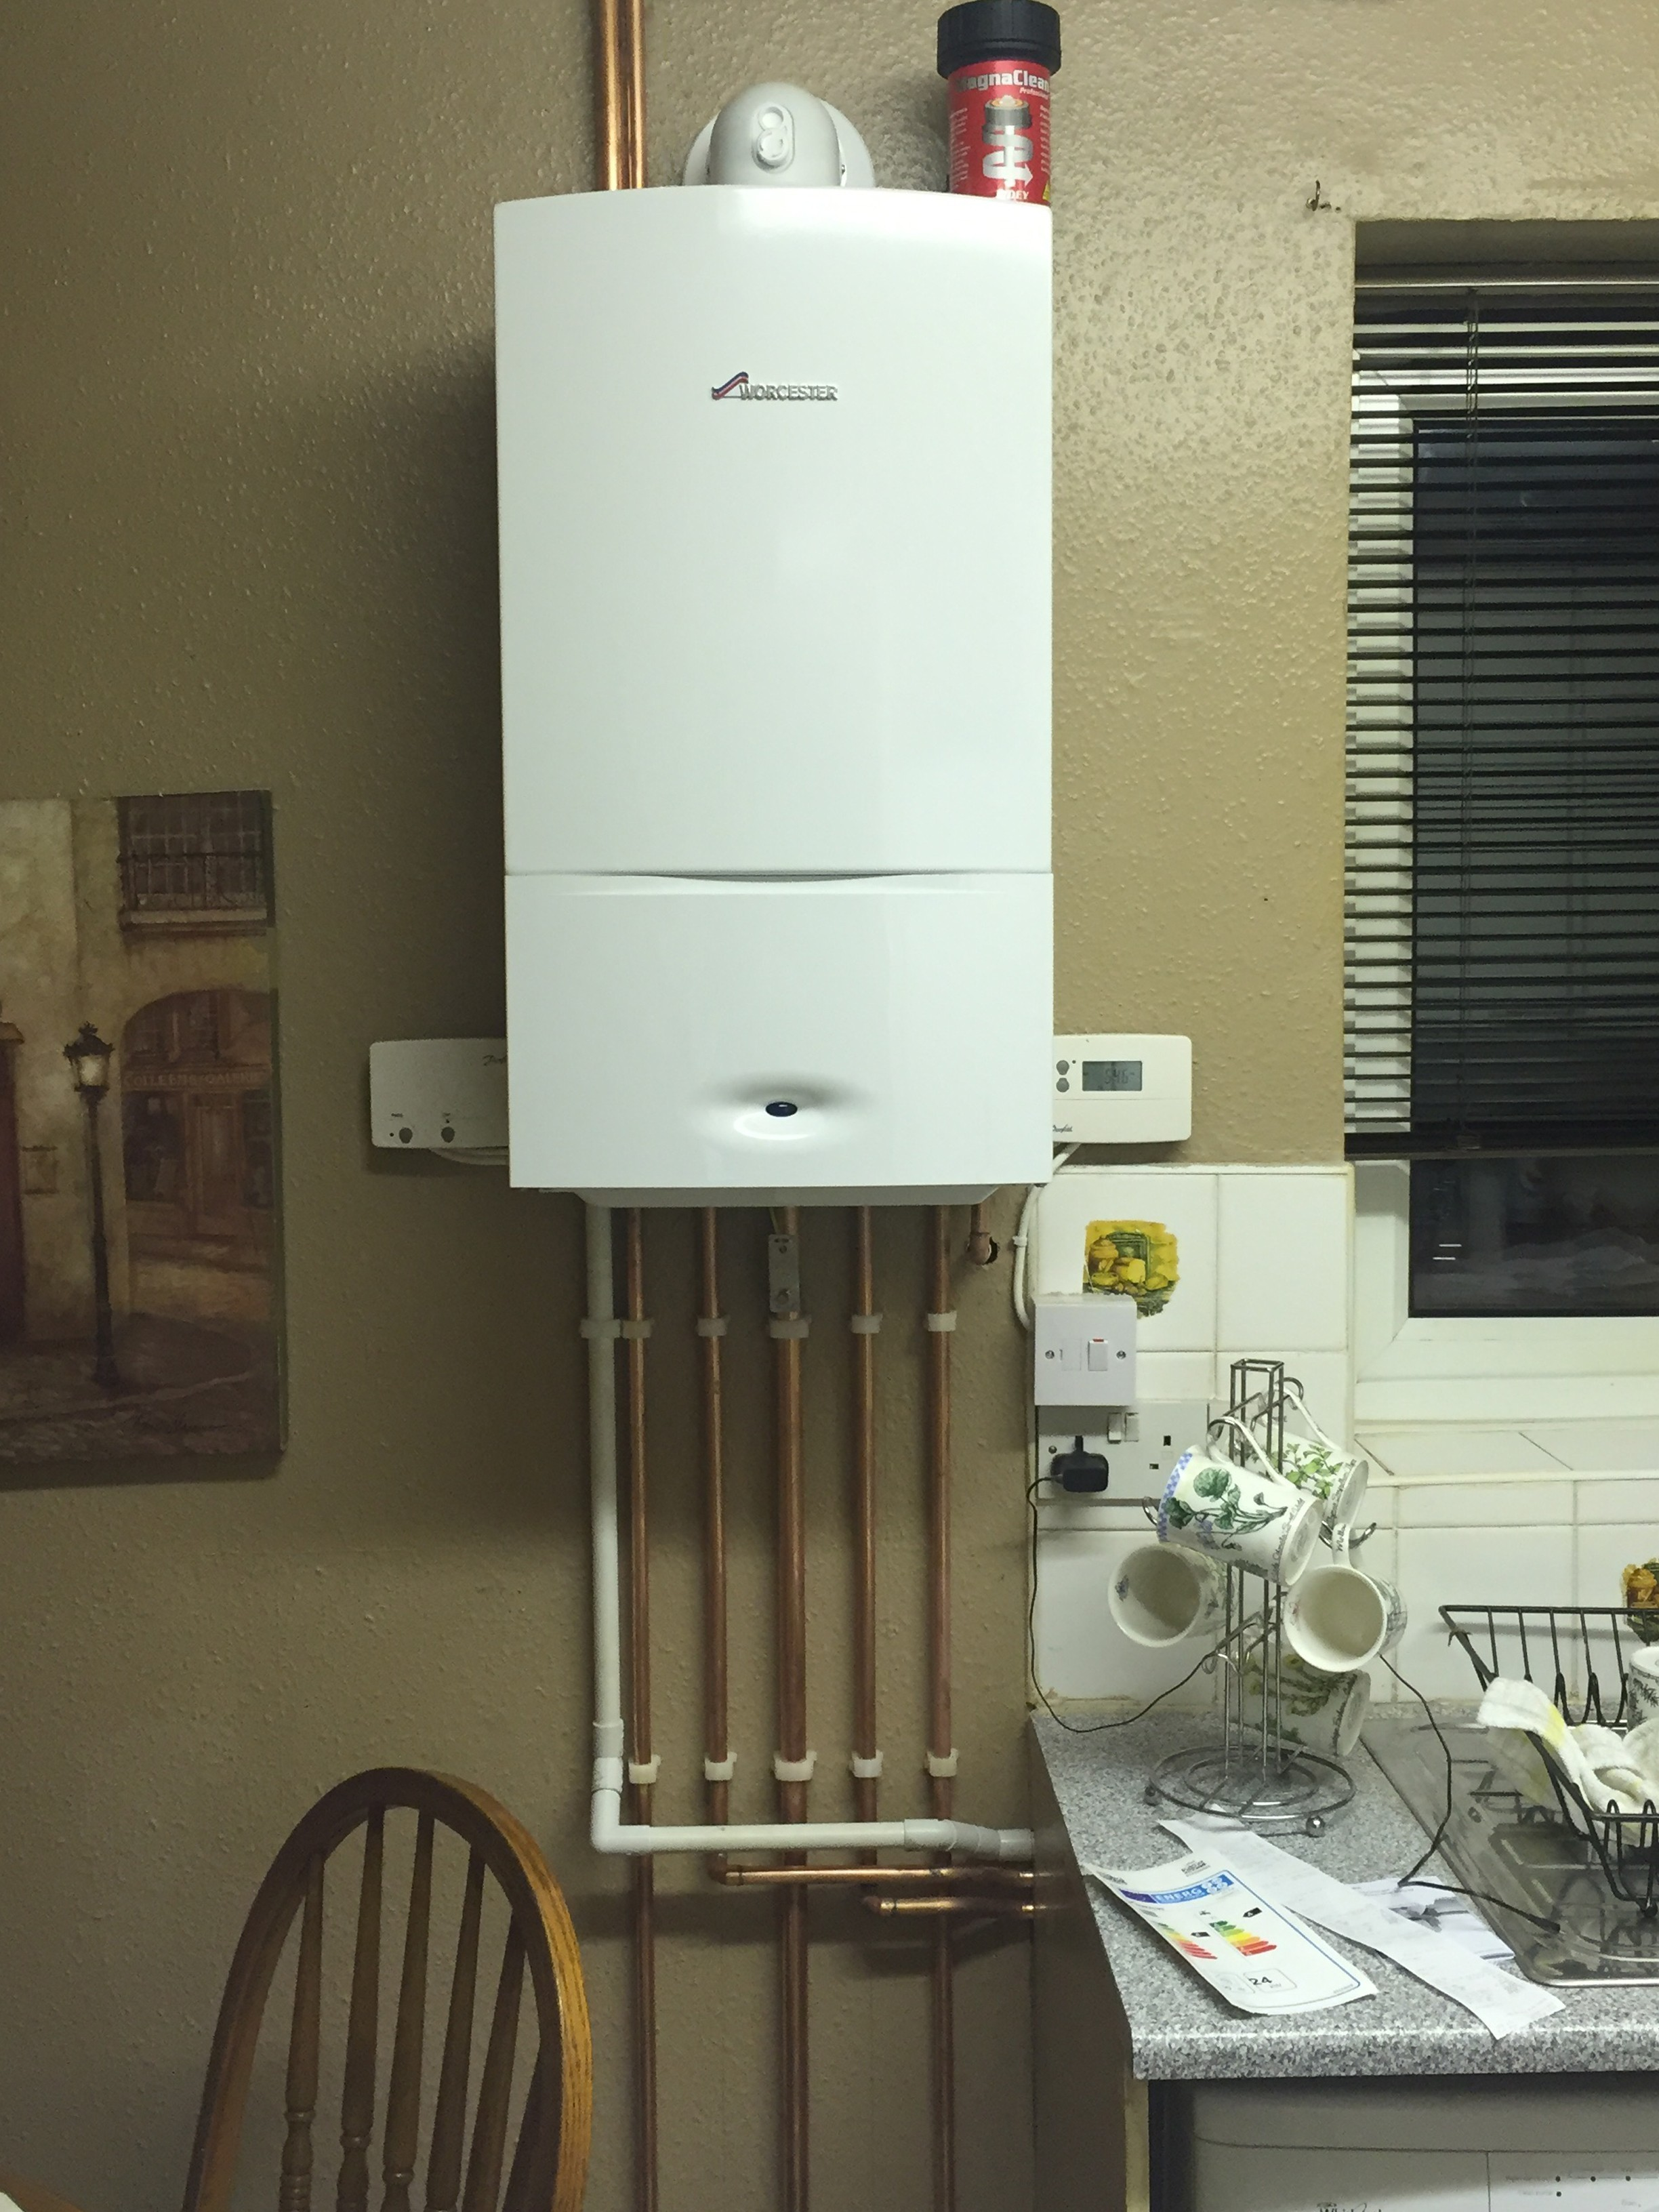 New Combi Boiler Prices, Costs   How Much Does a New Combi Boiler ...